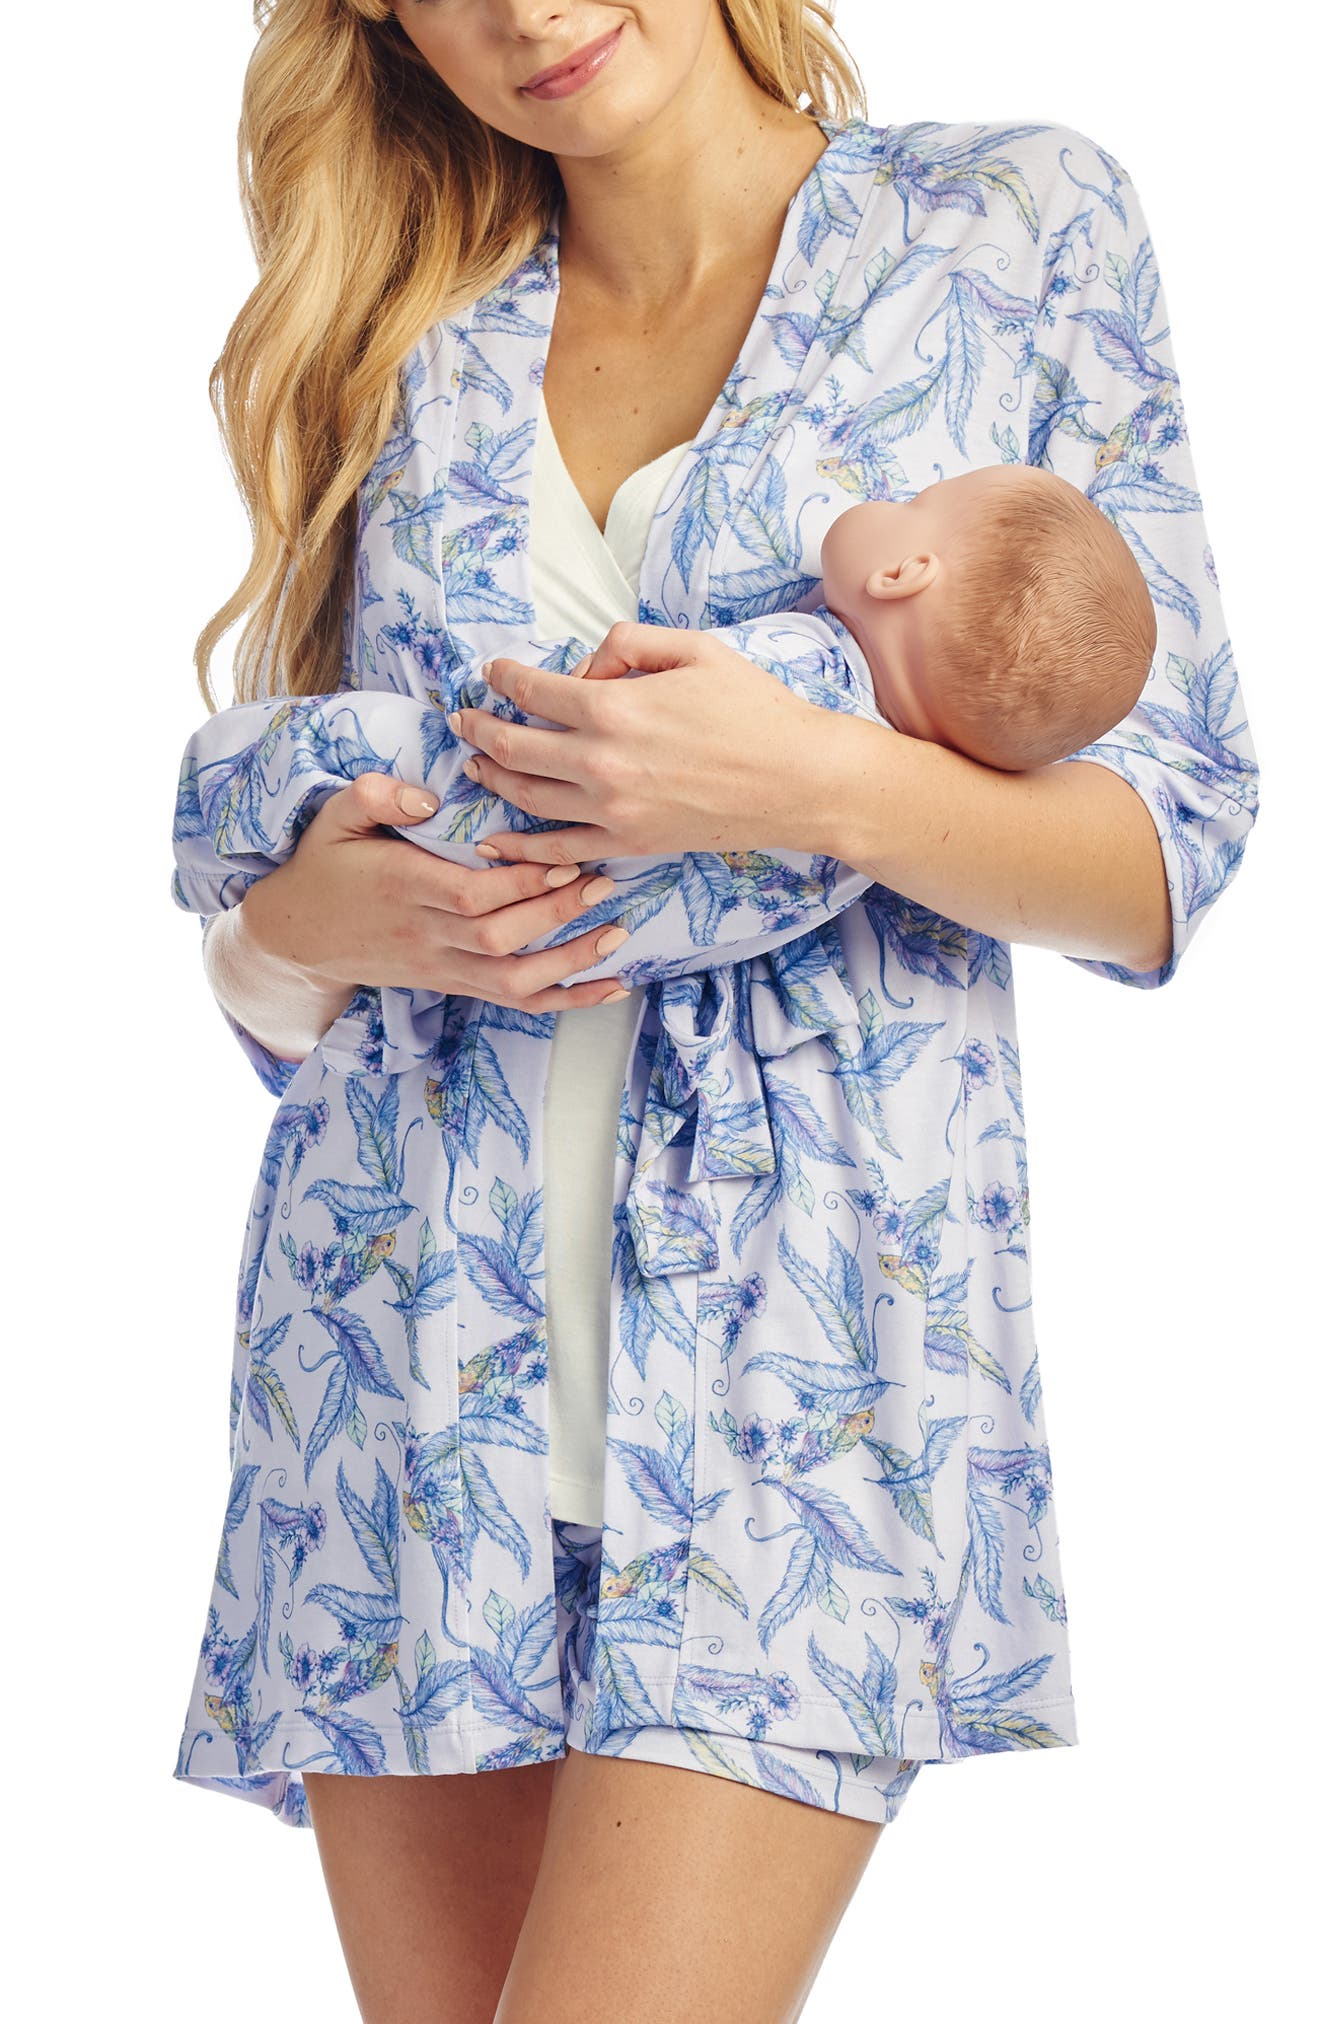 Everly Grey Adalia 5-Piece Maternity/nursing Pajama Set, None